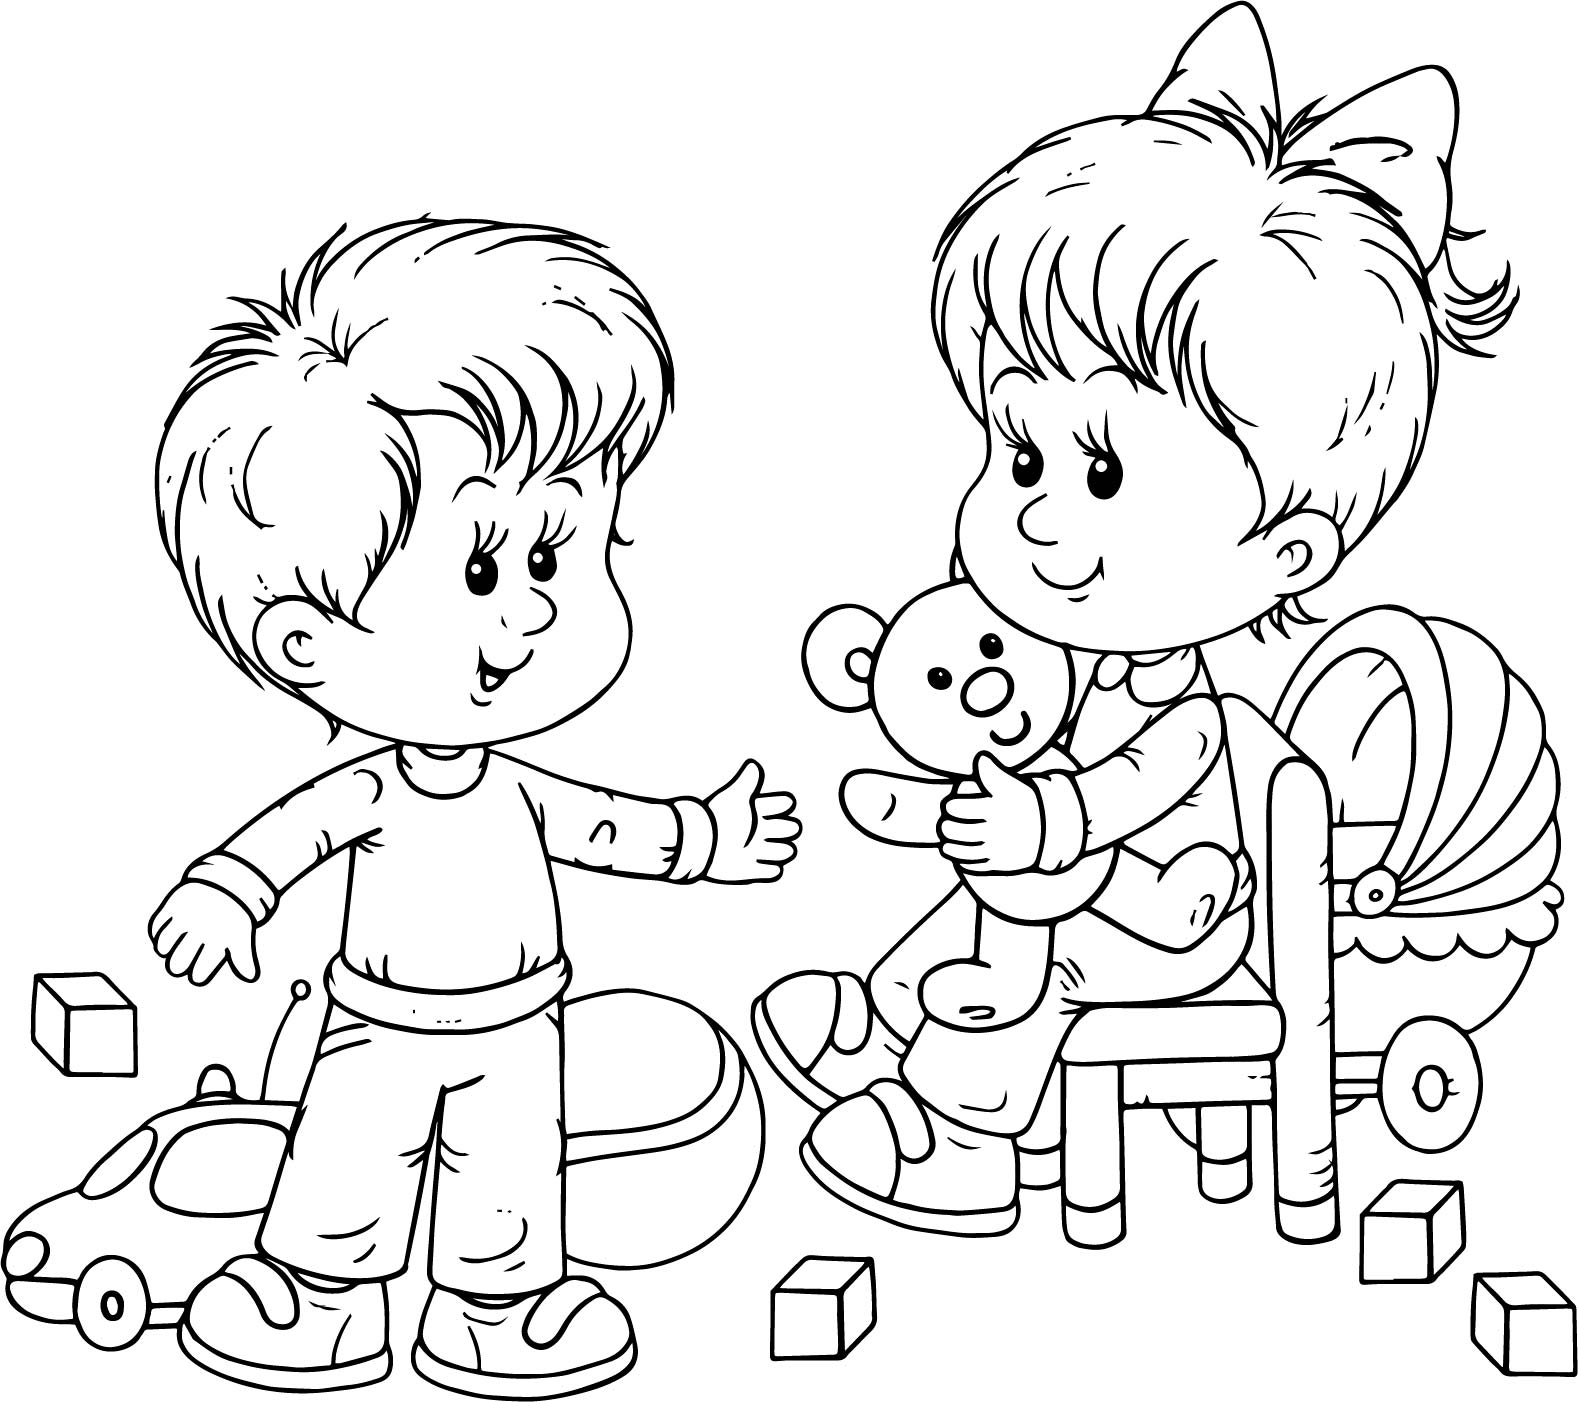 Toys For Boys To Color : Preschool boy and girl playing toys coloring page